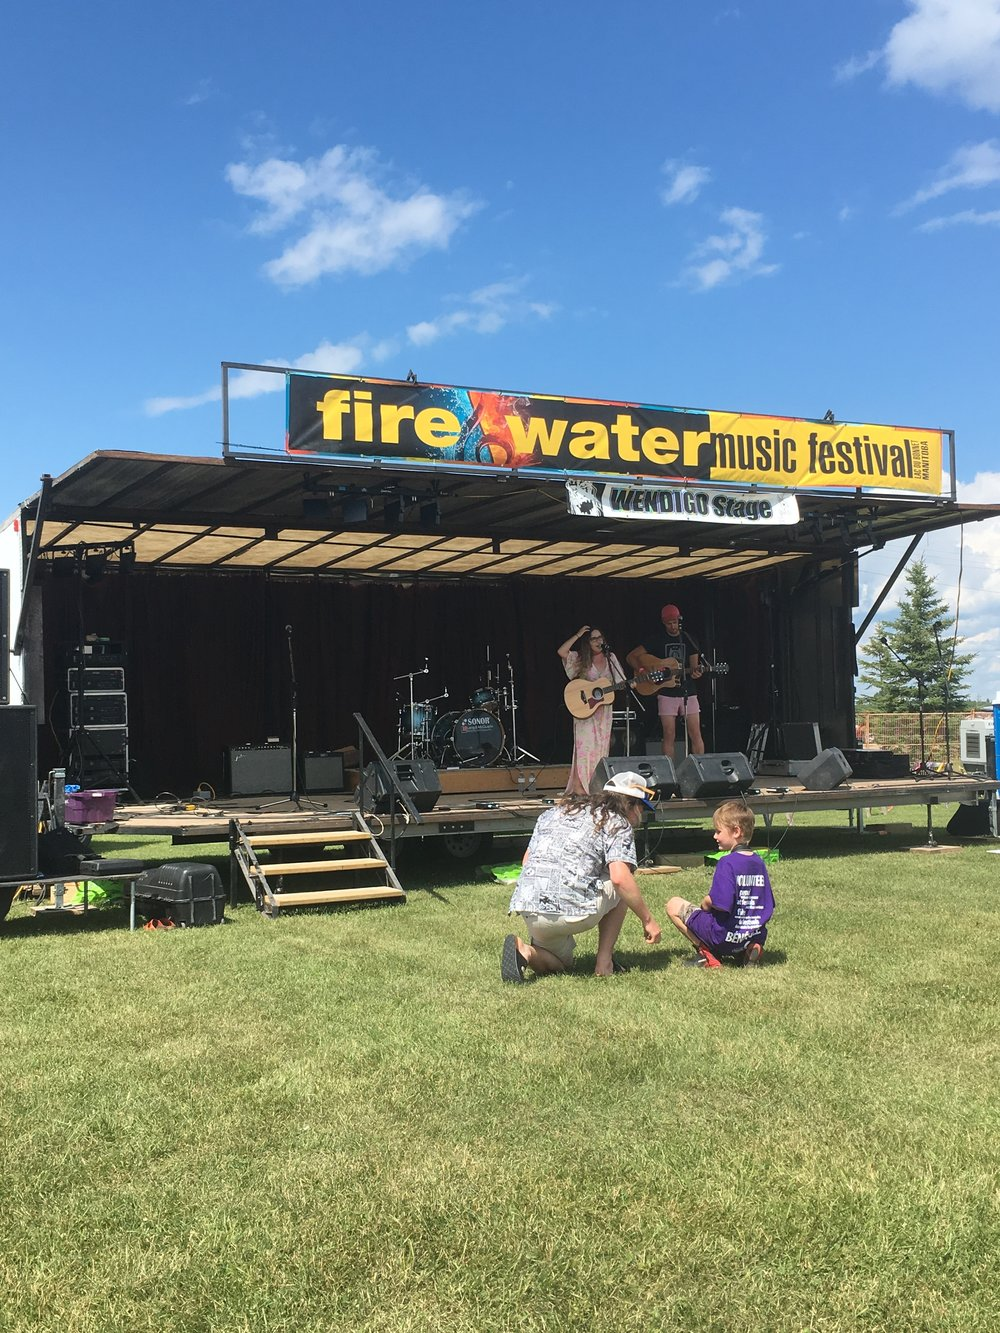 52. - I performed at two festivals this year - The Fire & Water Music Festival in Manitoba and The Living Roots Music Festival in New Brunswick. Here is a photo of us sound-checking at Fire & Water.